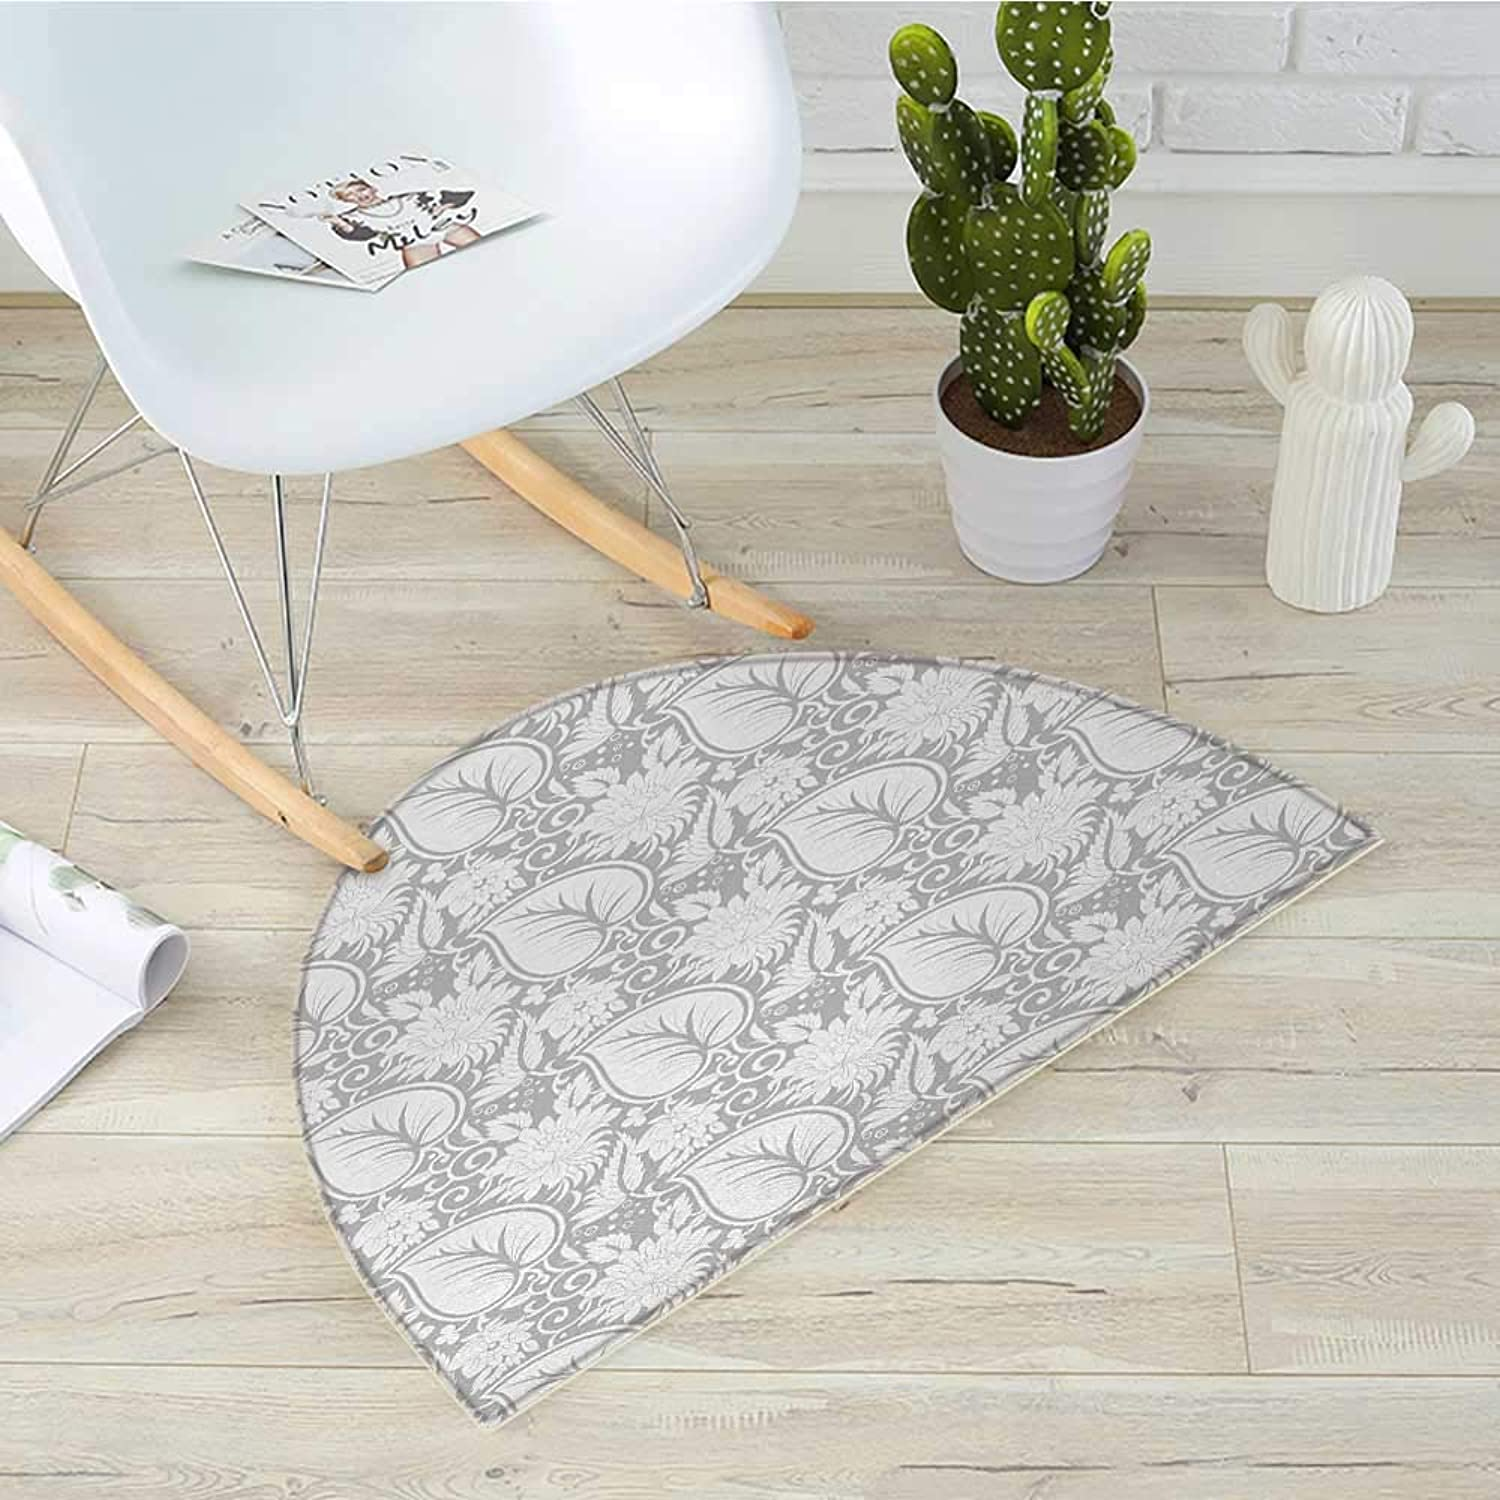 Grey Semicircular CushionBig Leaves on Old Fashion Floral Background Feminine Dramatic Style Retro Graphic Print Entry Door Mat H 47.2  xD 70.8  Grey